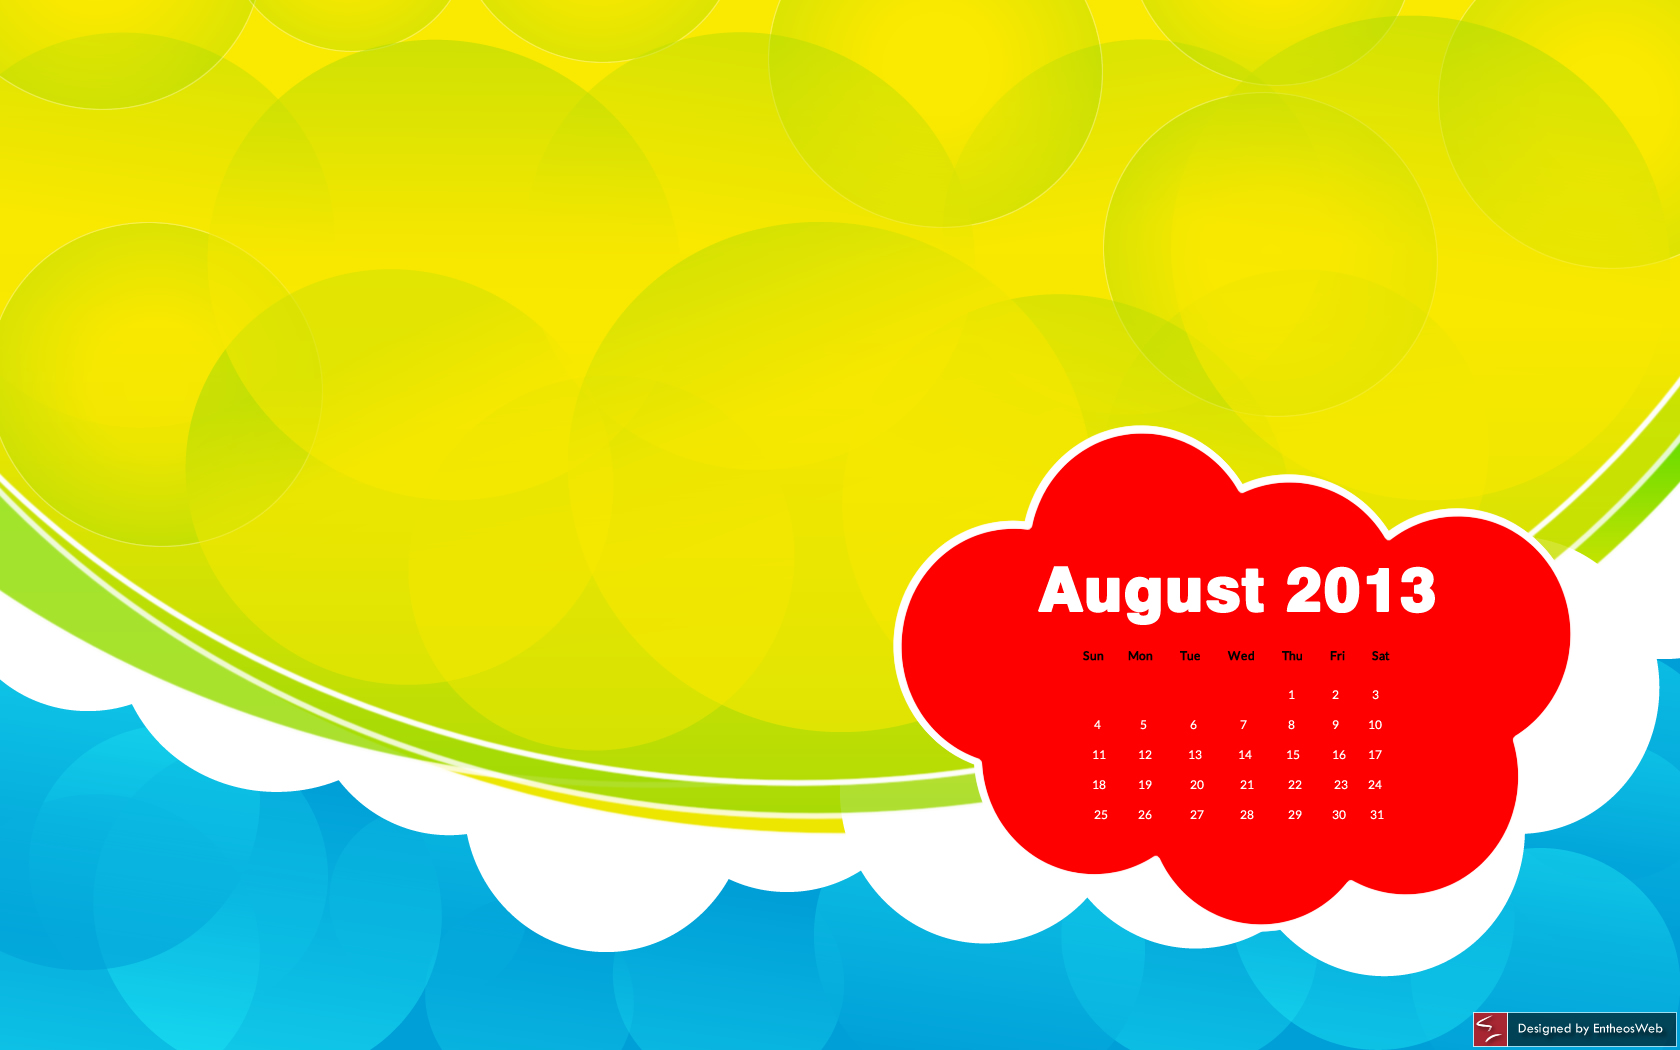 gorgeous free desktop wallpaper calendar  u2013 august 2013